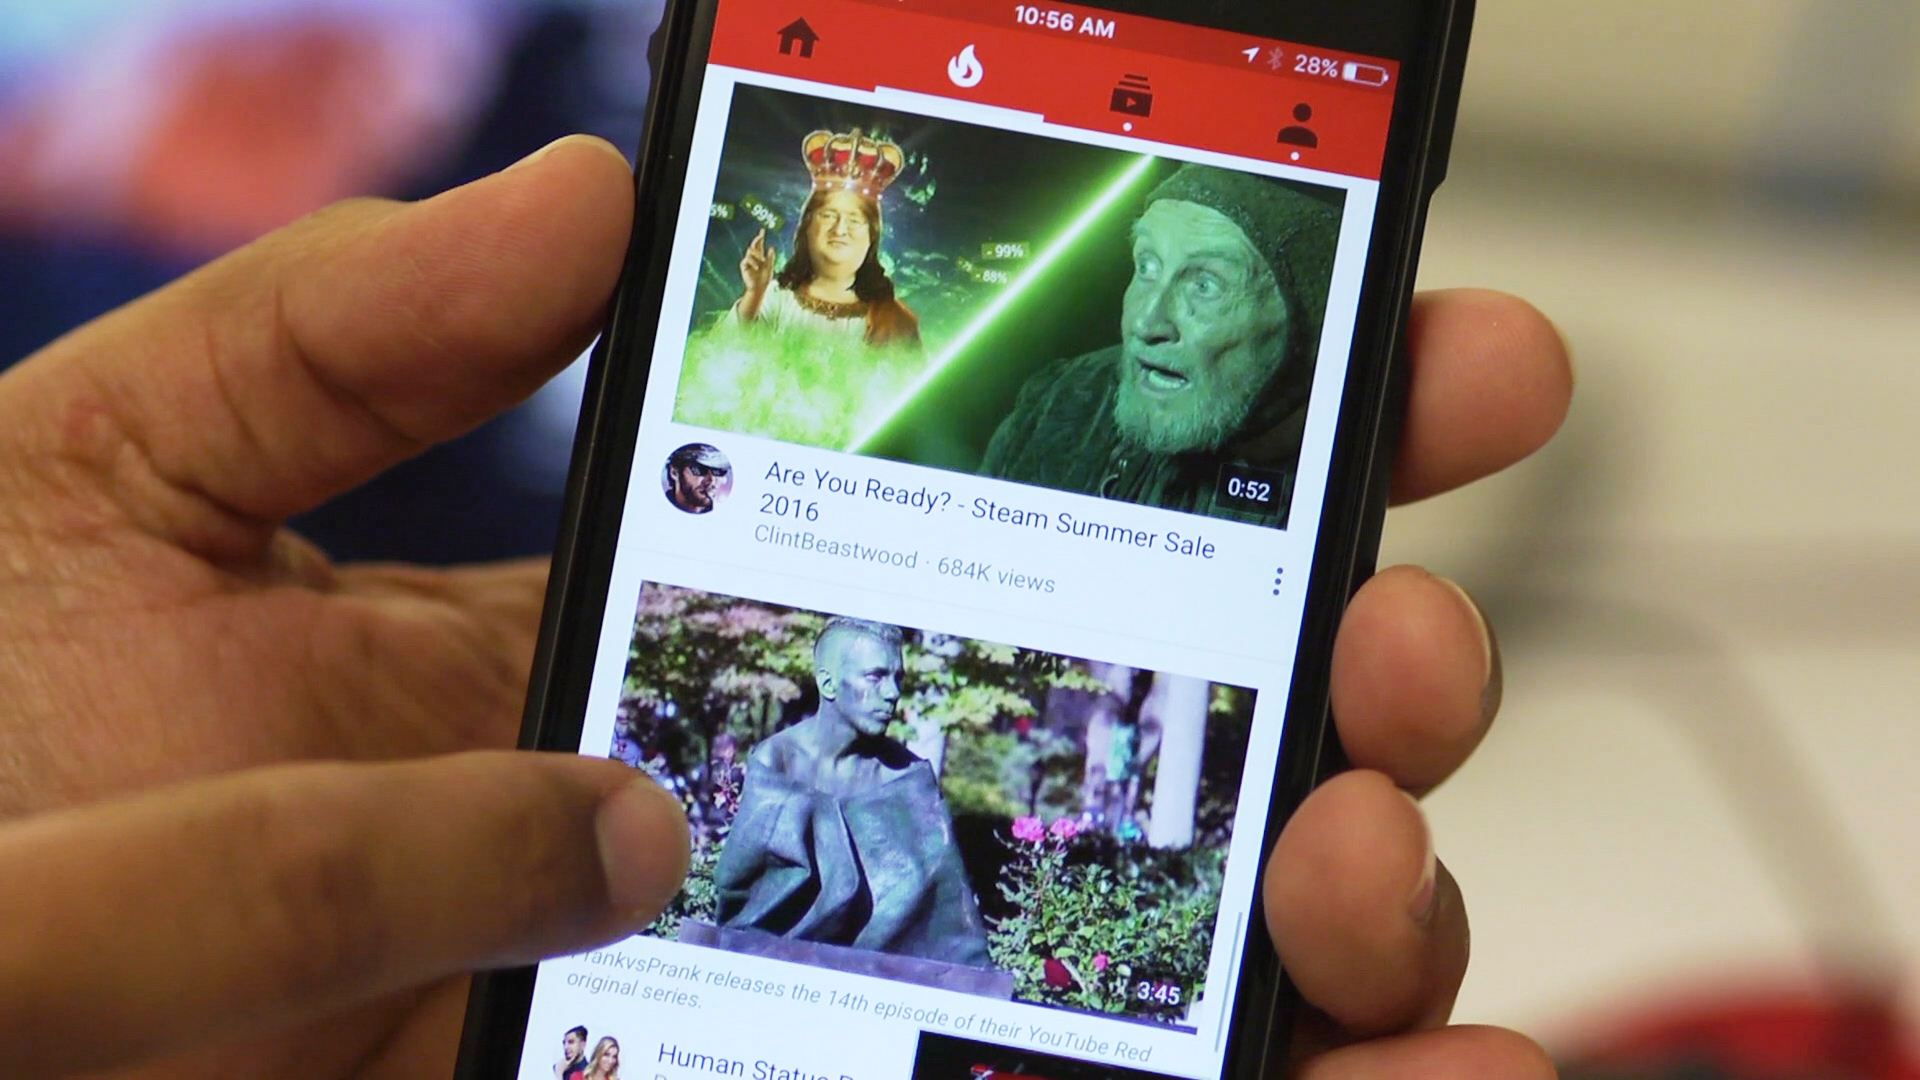 Video: YouTube brings live streaming to its mobile apps